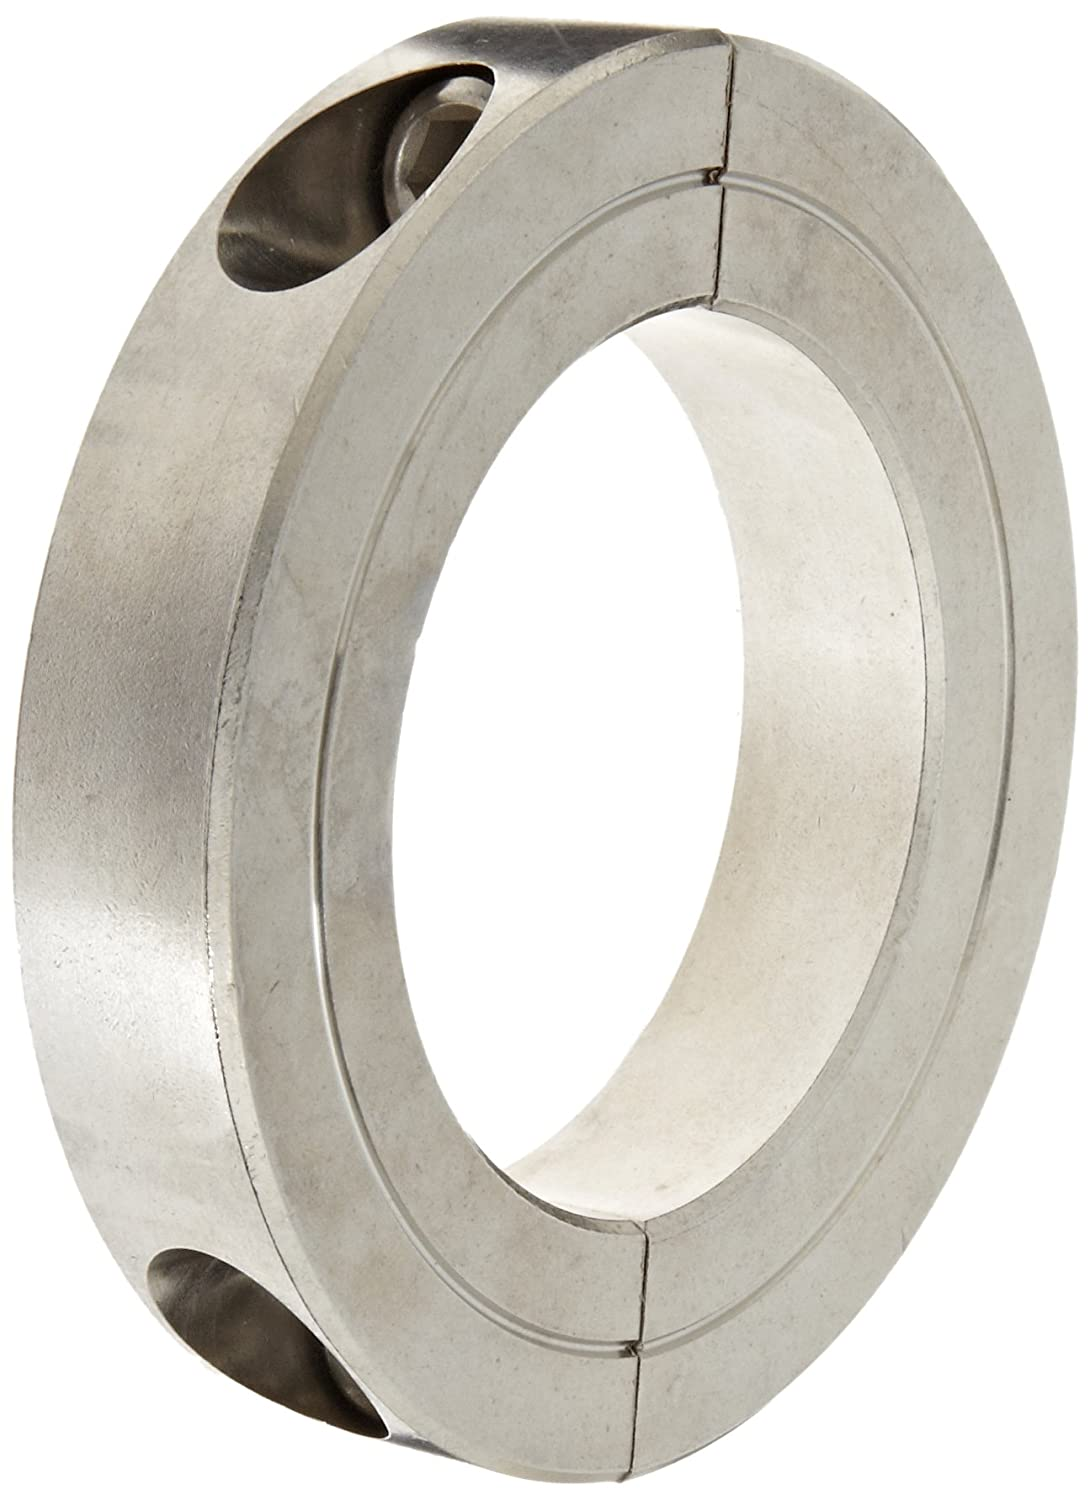 Climax Metal H2C-193-S T303 Recessed Screw Clamping Collar, Two Piece, Stainless Steel, 1-15/16